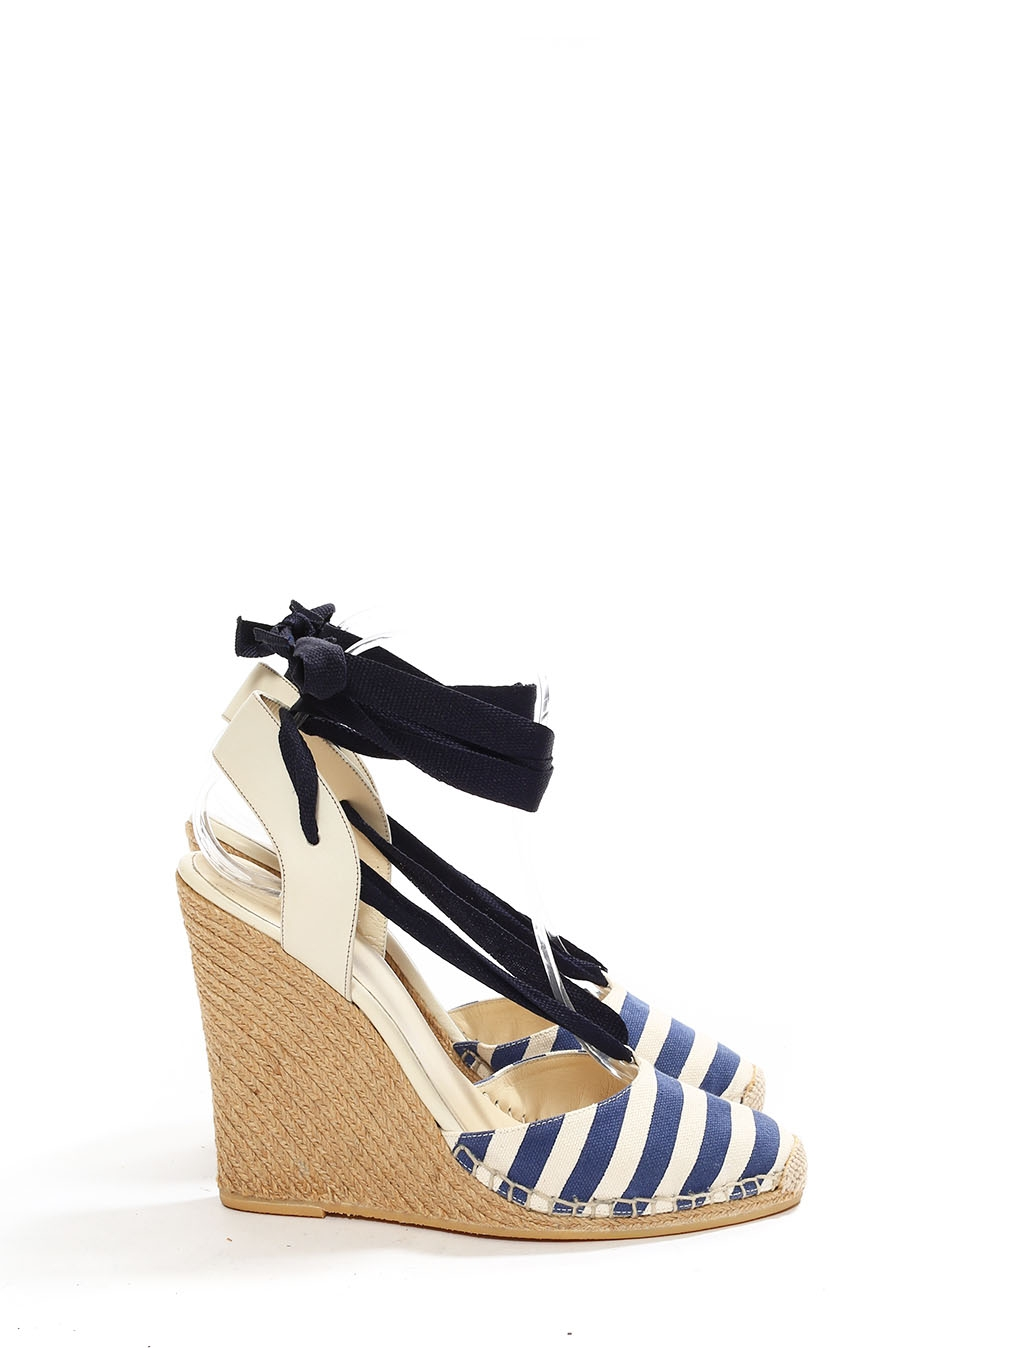 abd348a02 Ivory white and navy blue striped canvas espadrilles wedge sandals Retail  price €450 Size 38.5 ...